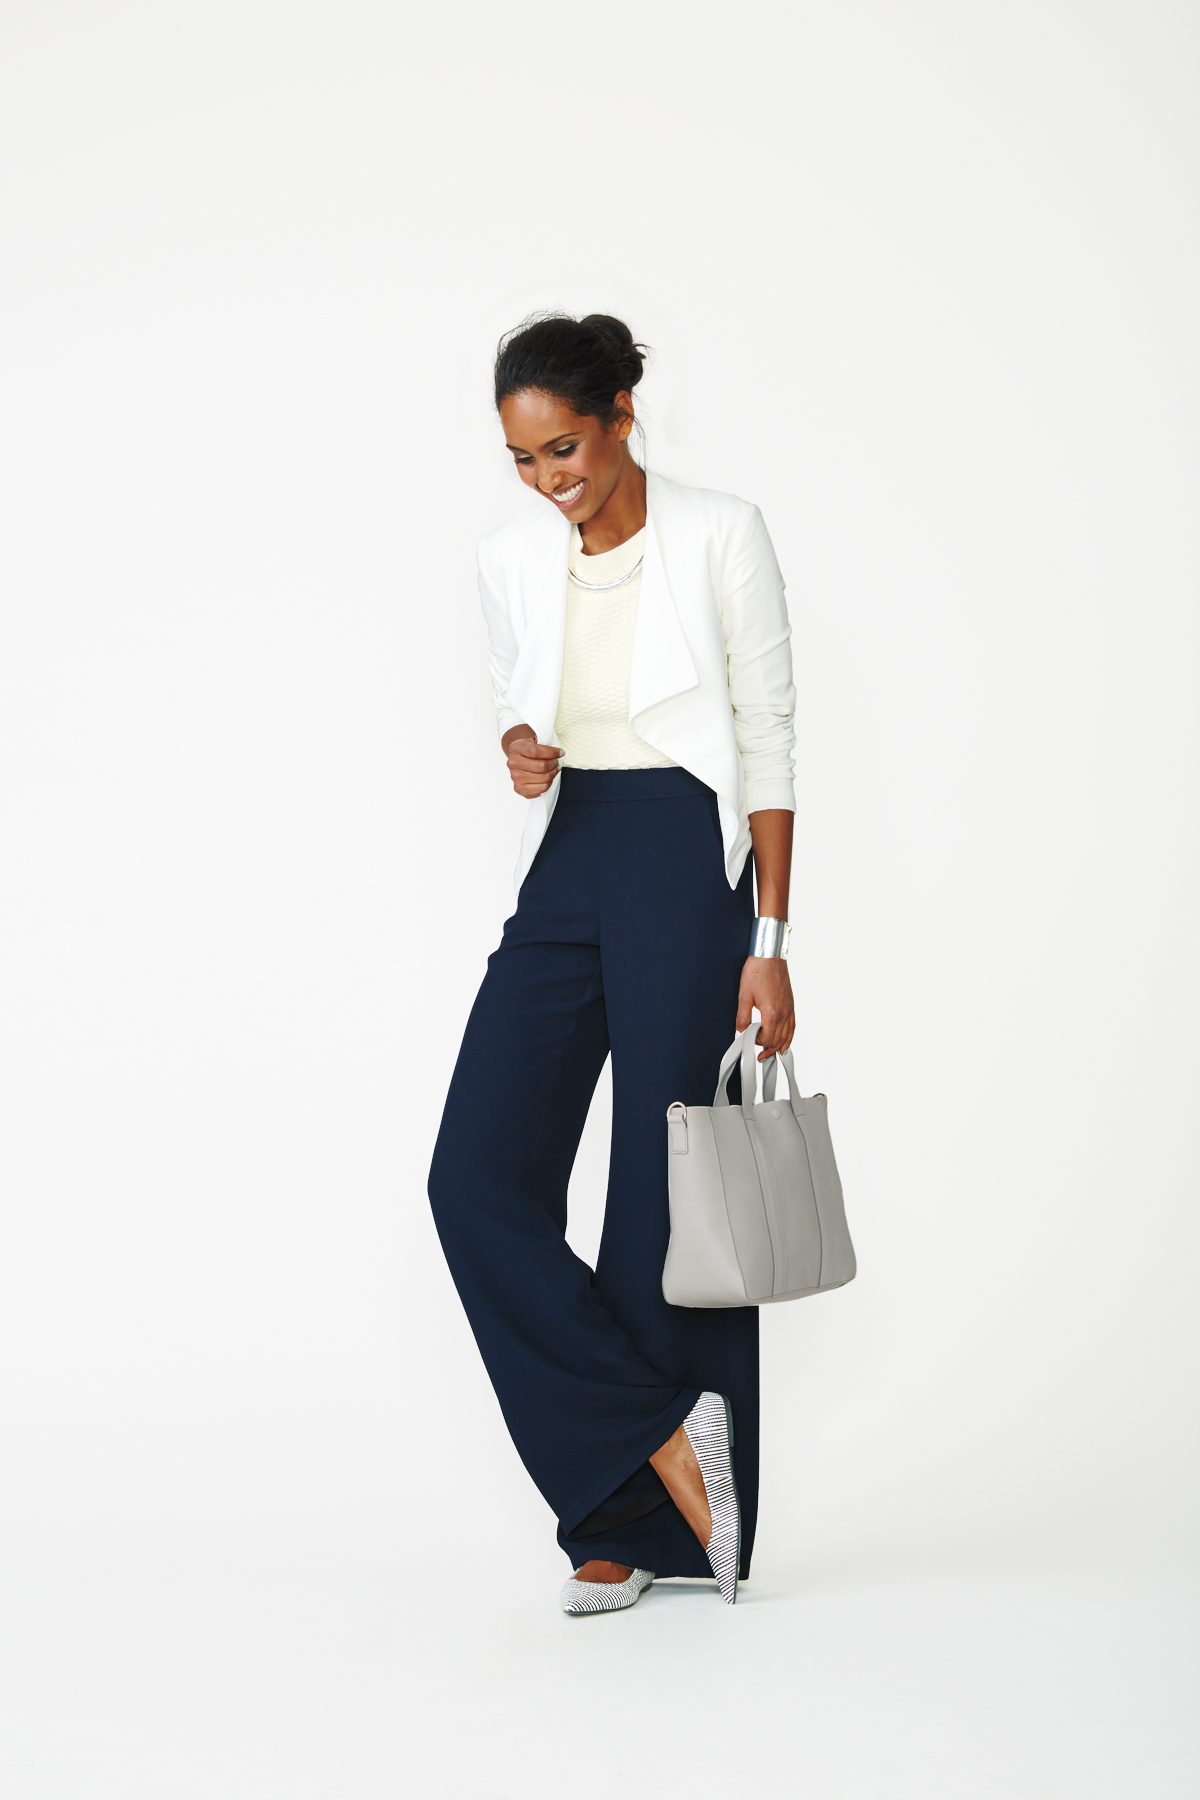 Blazer + Sweater + Wide-Leg Pants + Flats